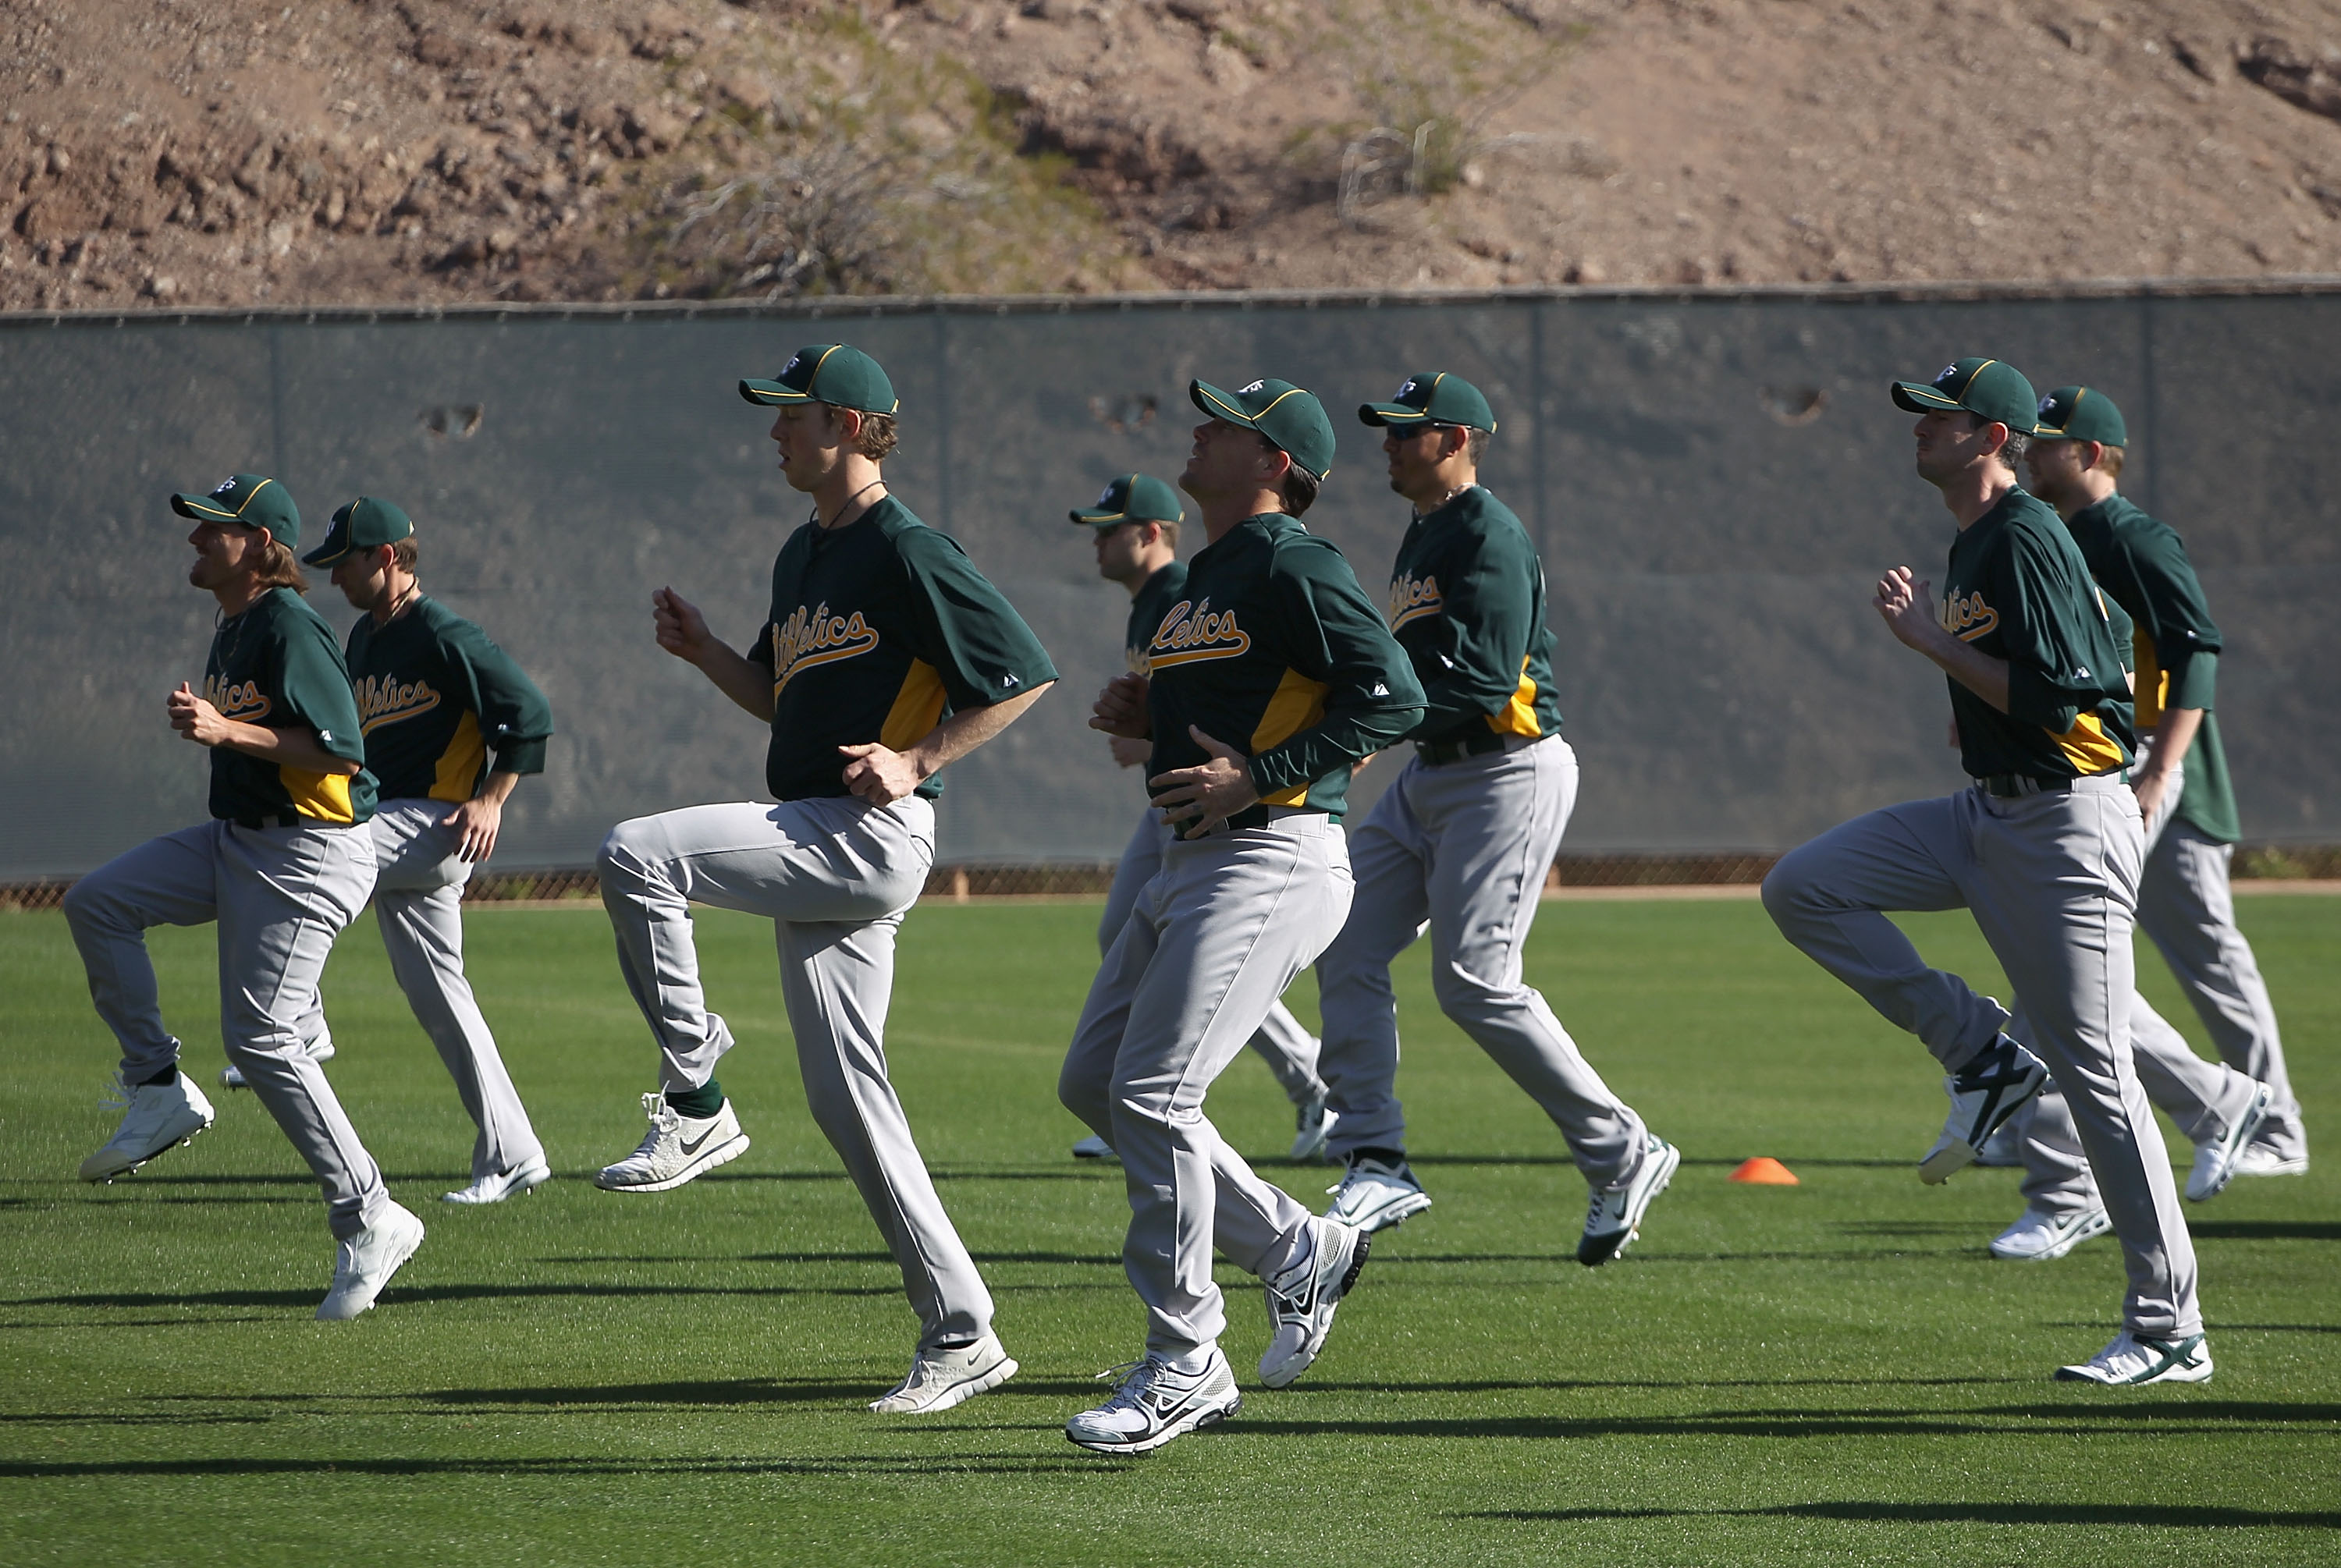 PHOENIX, AZ - FEBRUARY 16:  Pitchers for the Oakland Athletics warm up during a MLB spring training practice at Phoenix Municipal Stadium on February 16, 2011 in Phoenix, Arizona.  (Photo by Christian Petersen/Getty Images)